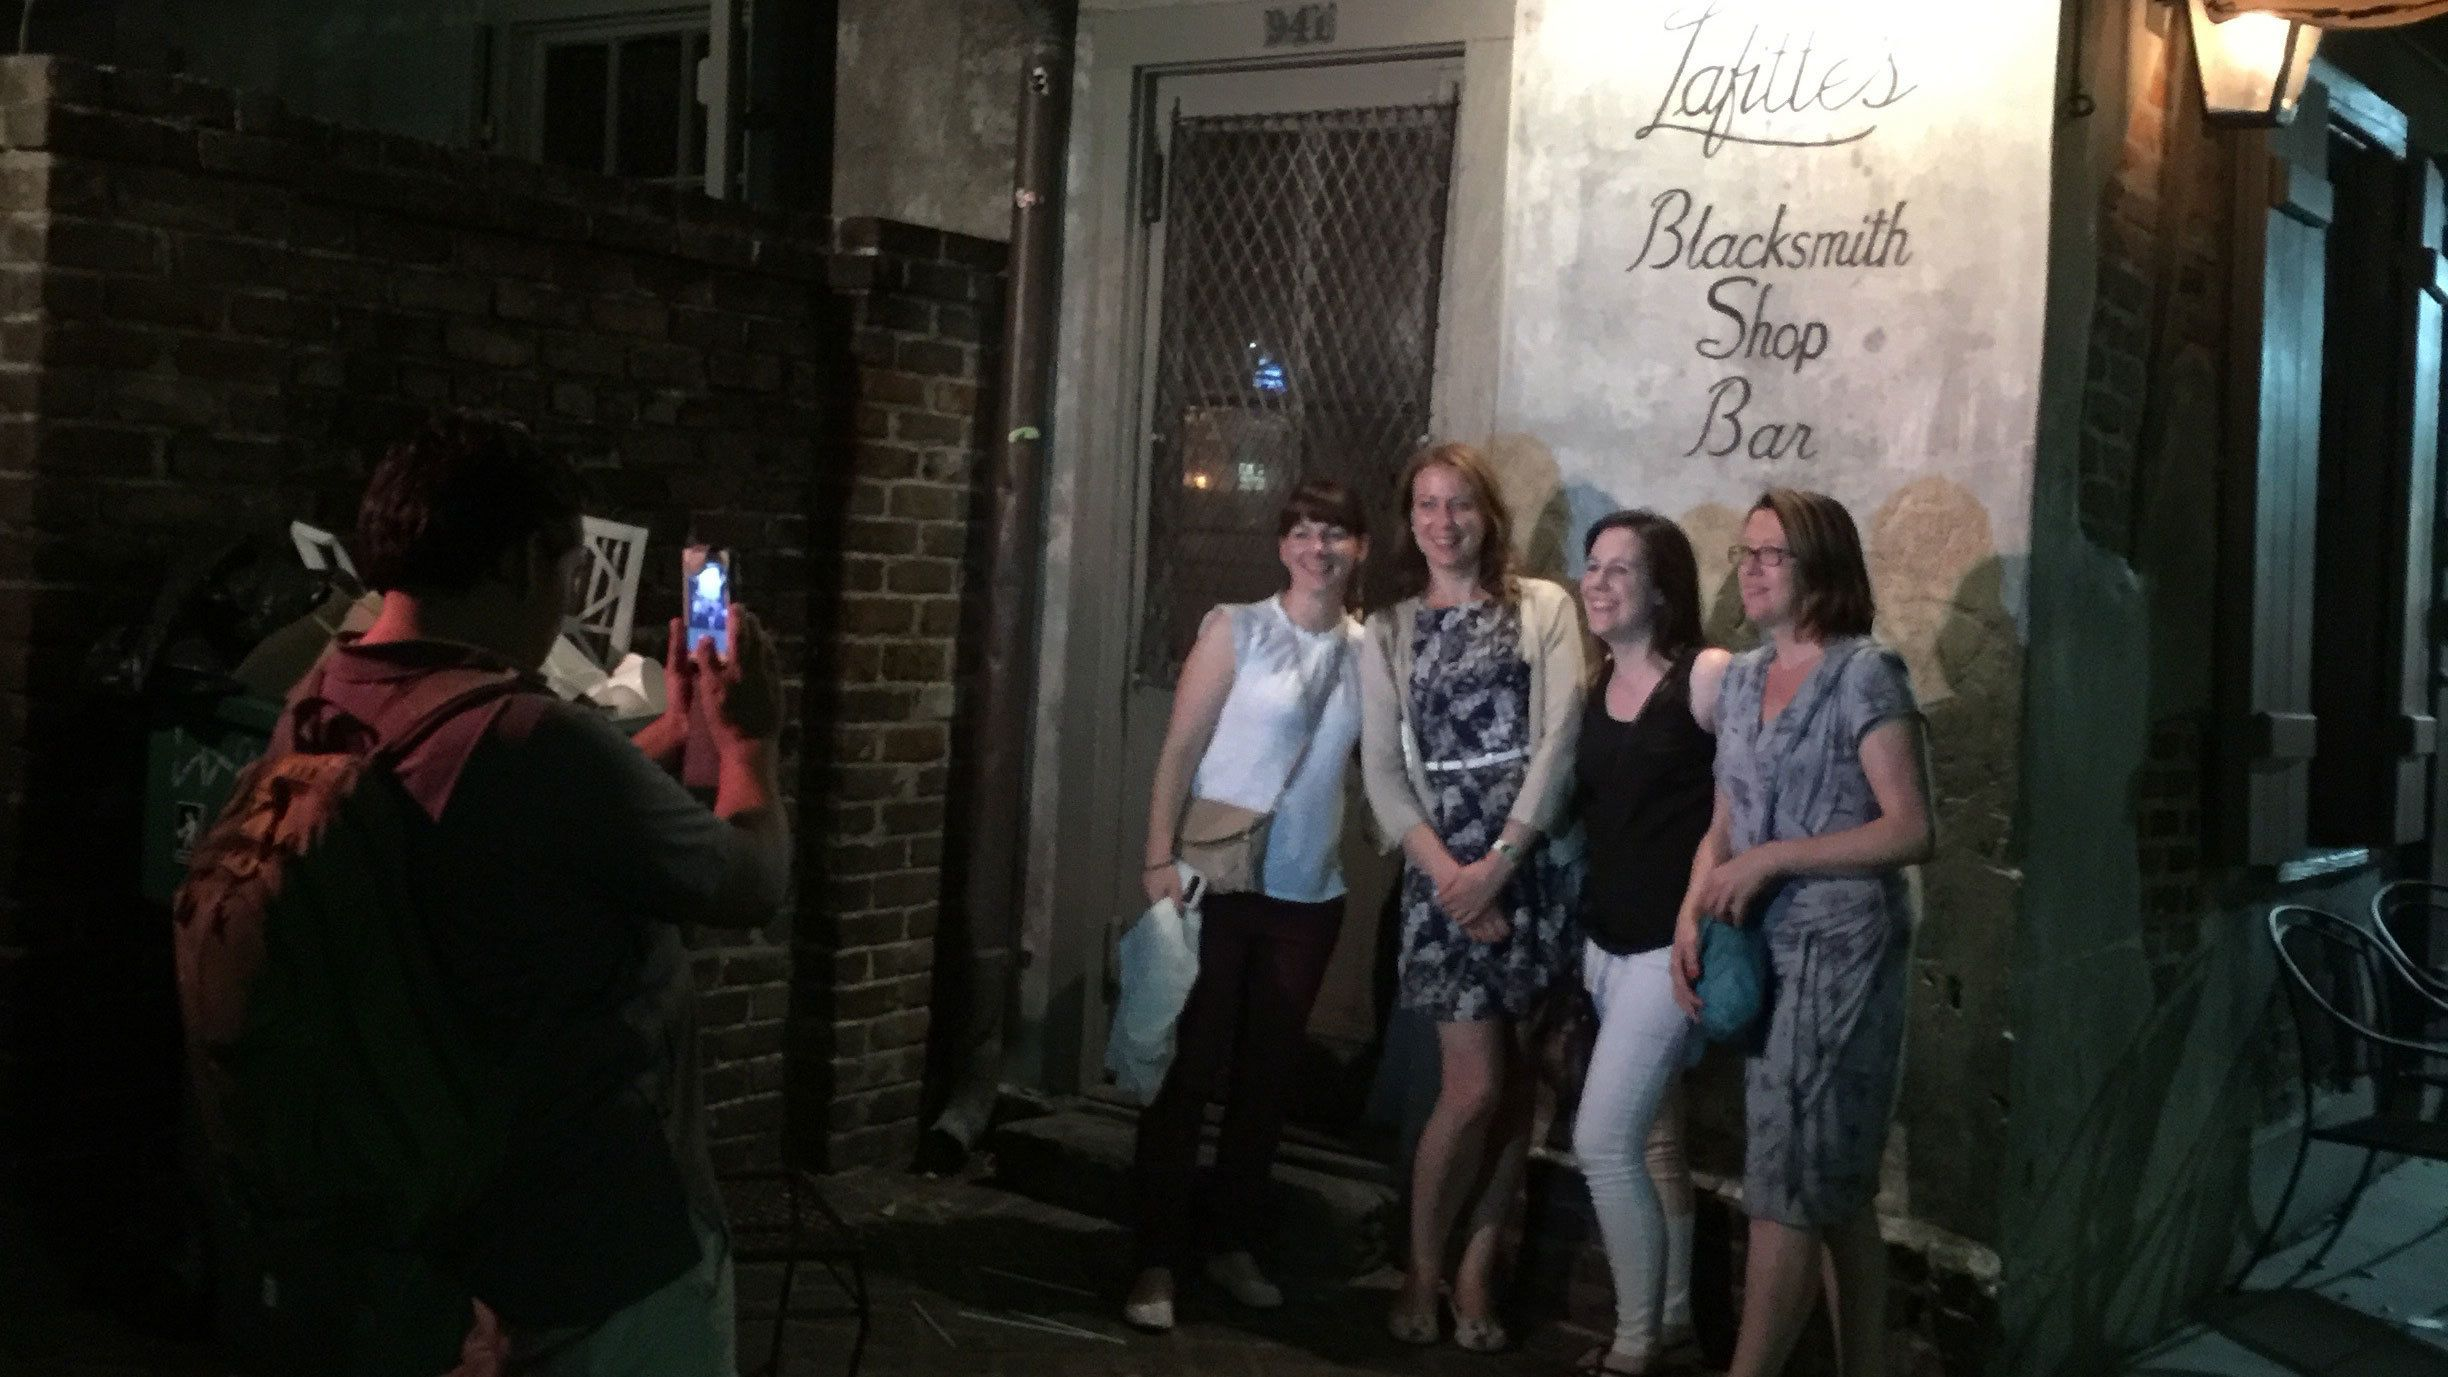 Women posing for photo outside of bar in New Orleans